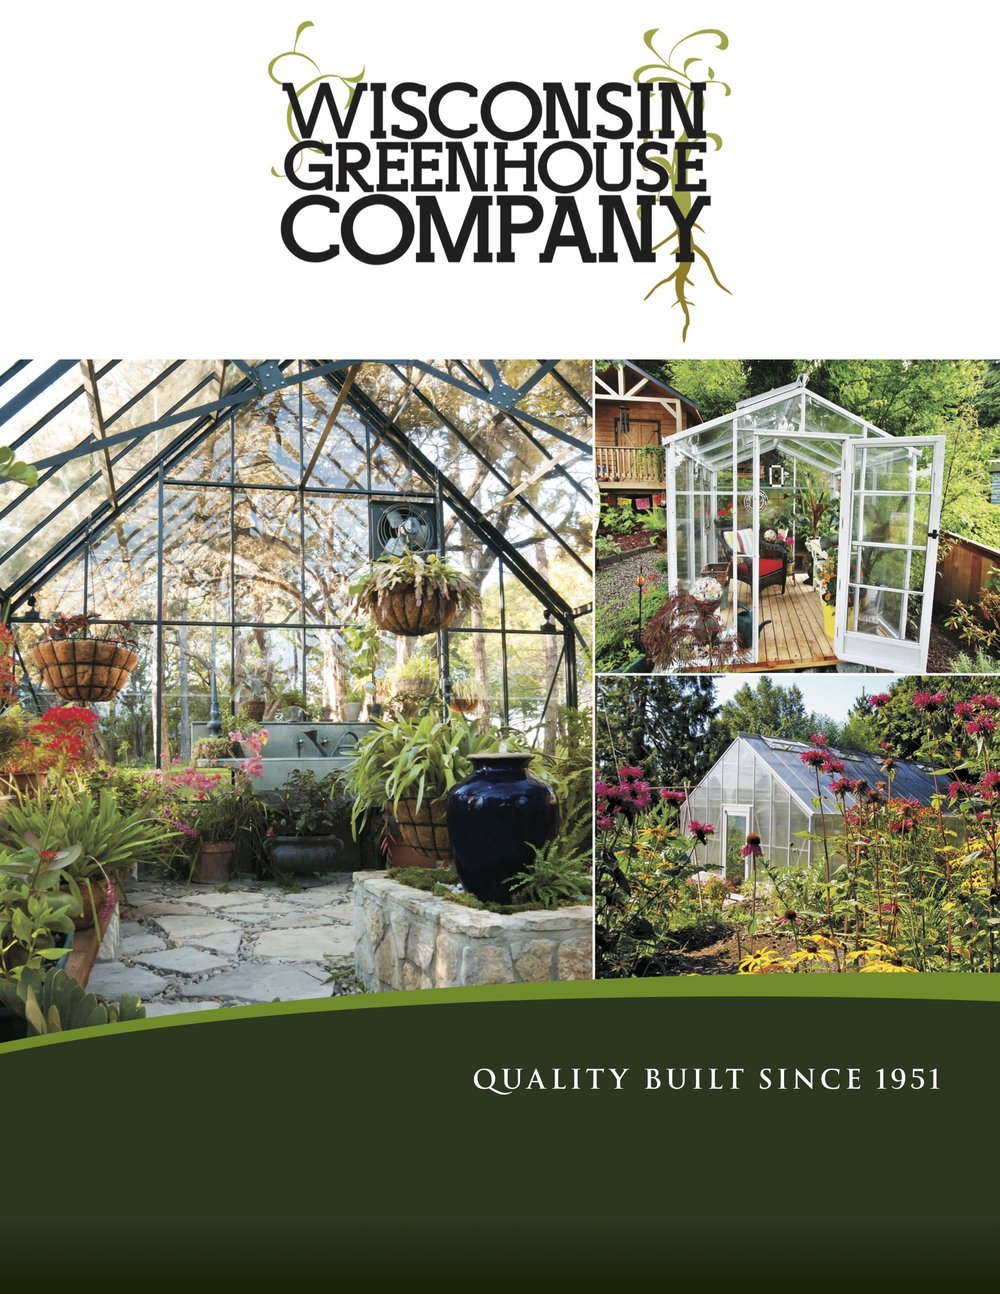 111552_Wisconsin Greenhouse Company_National Catalog (4) (dragged) 0.jpeg